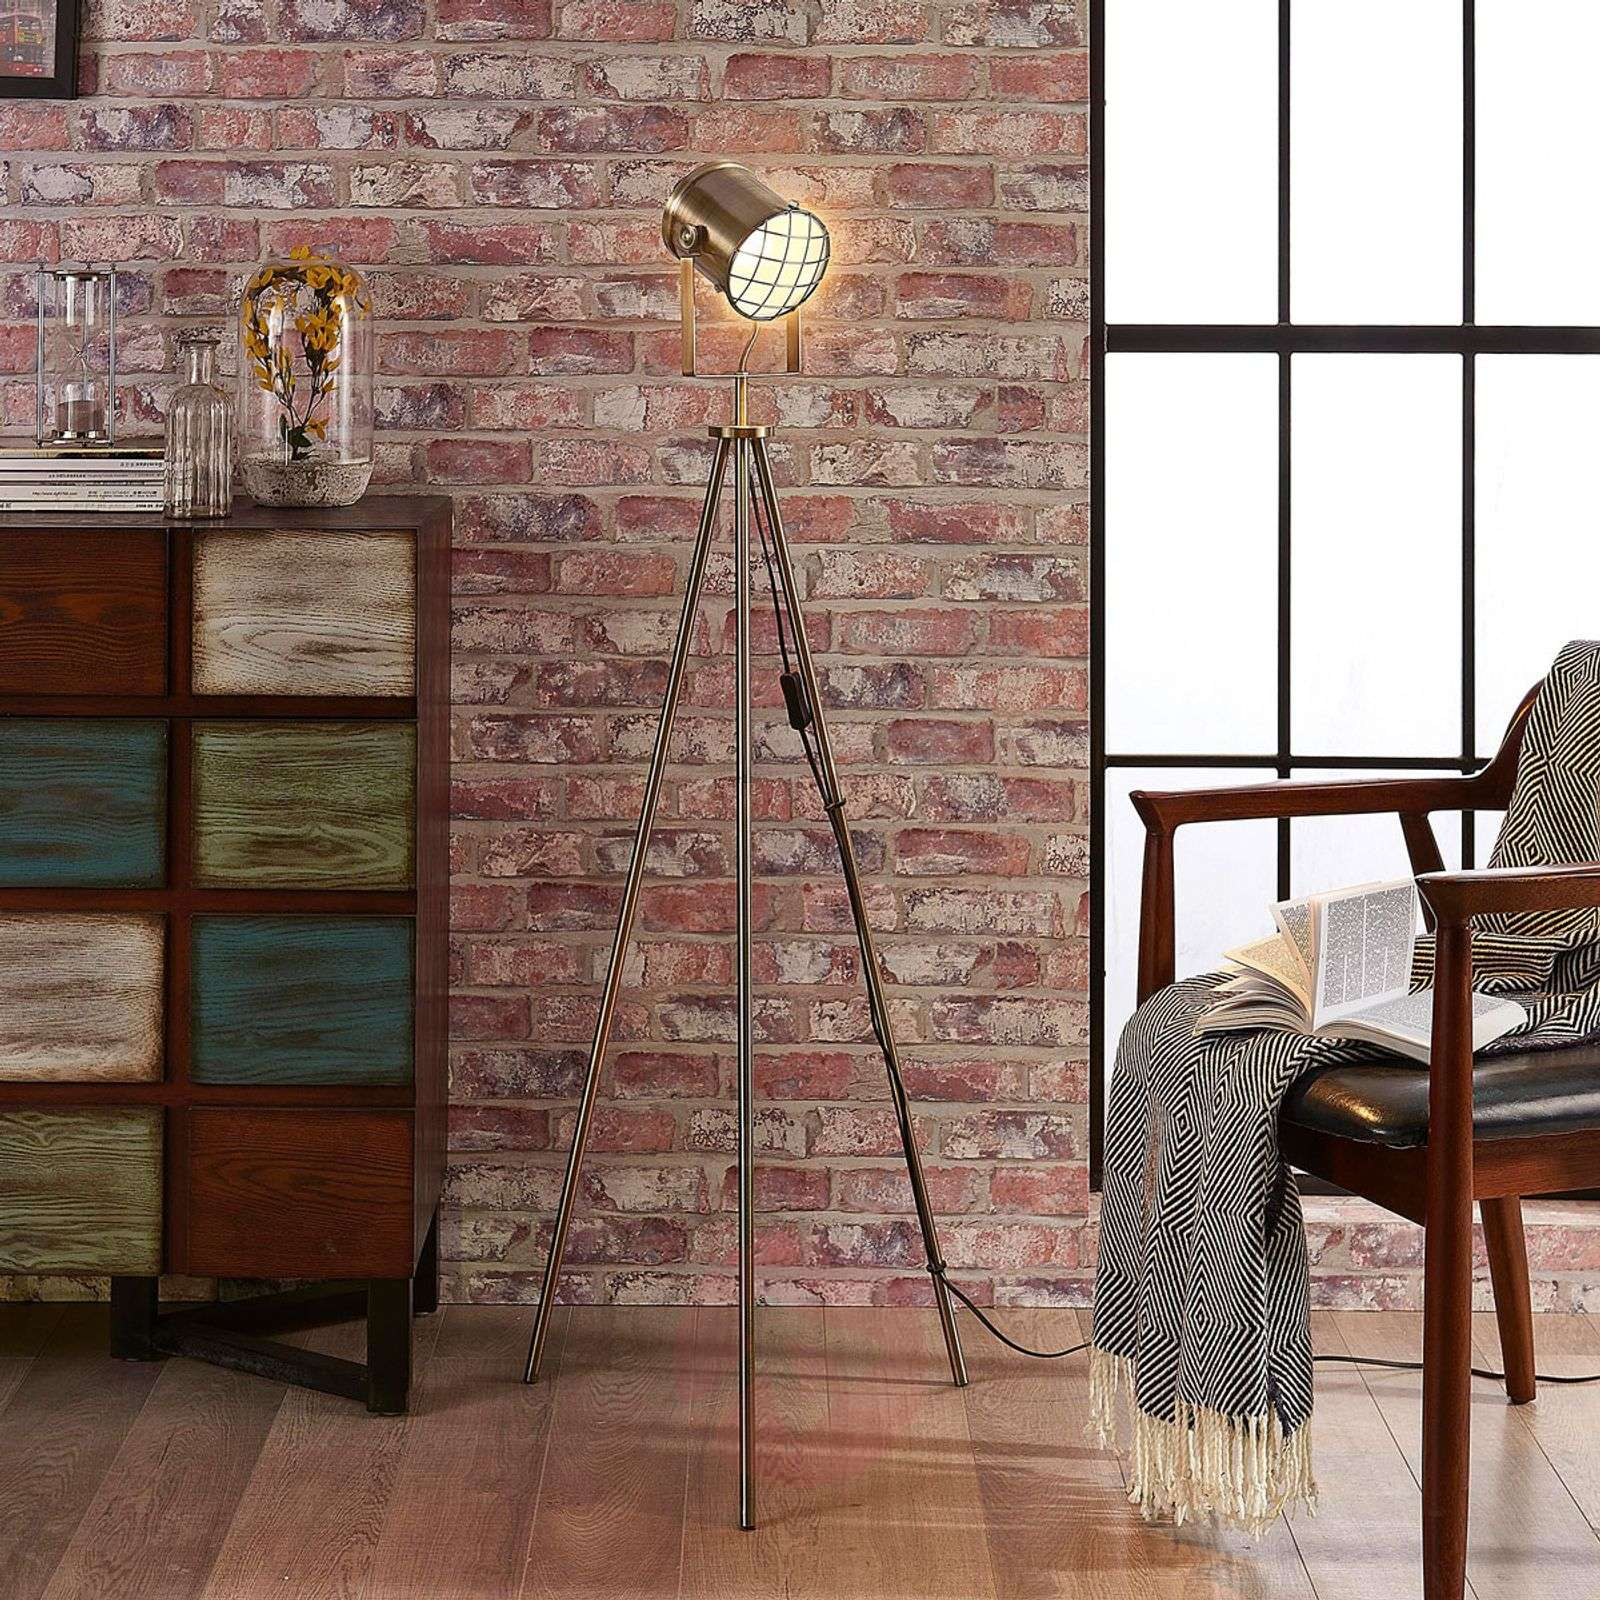 Tripod floor lamp Ebbi in industrial style-9621232-02